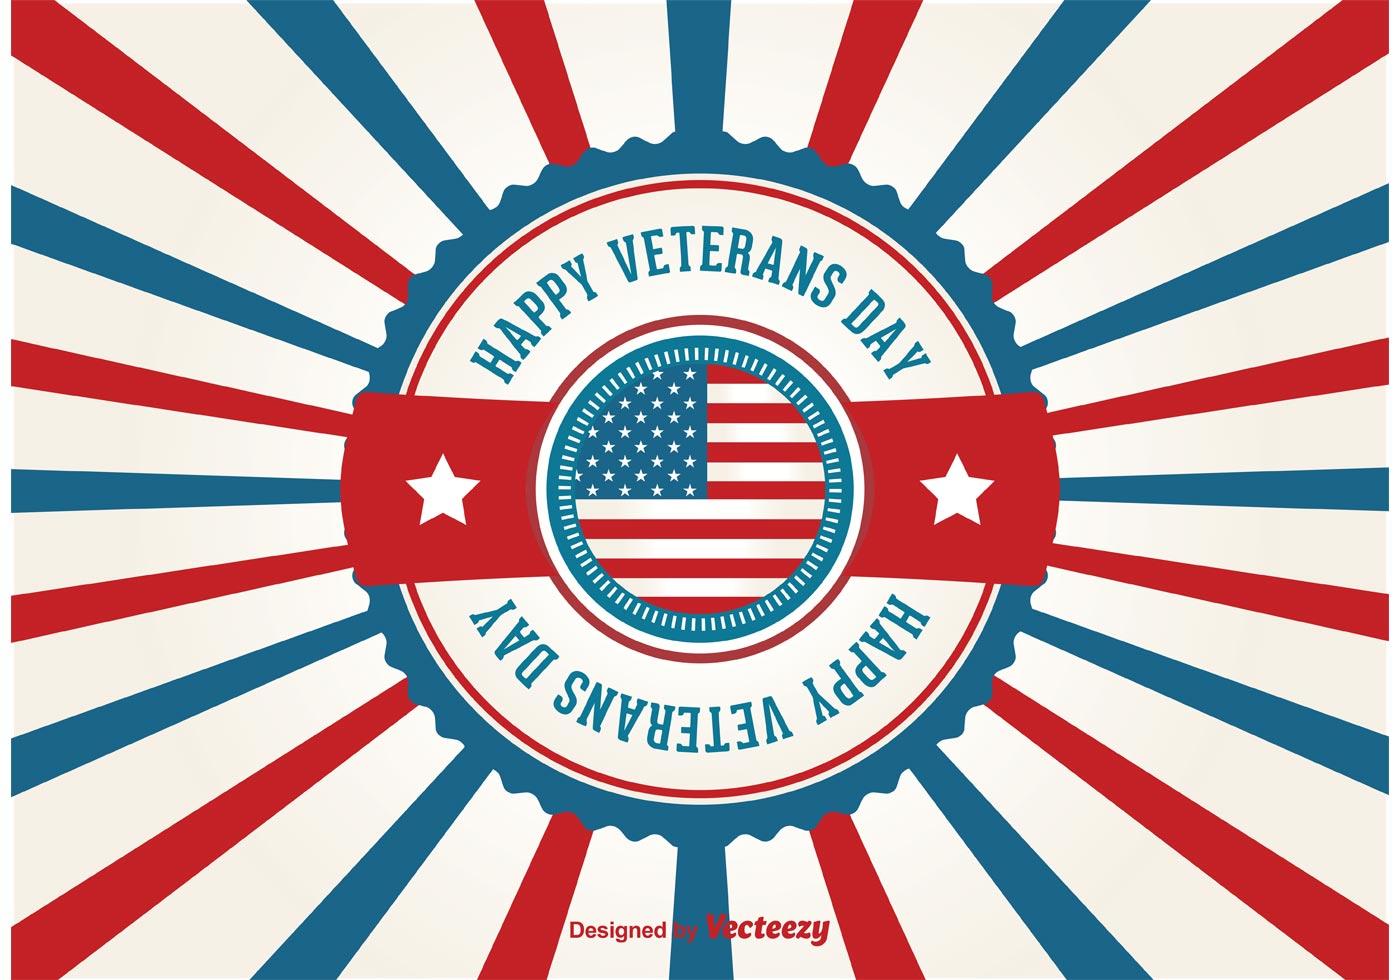 51 most beautiful veterans day wish pictures and images veterans day greetings poster kristyandbryce Choice Image